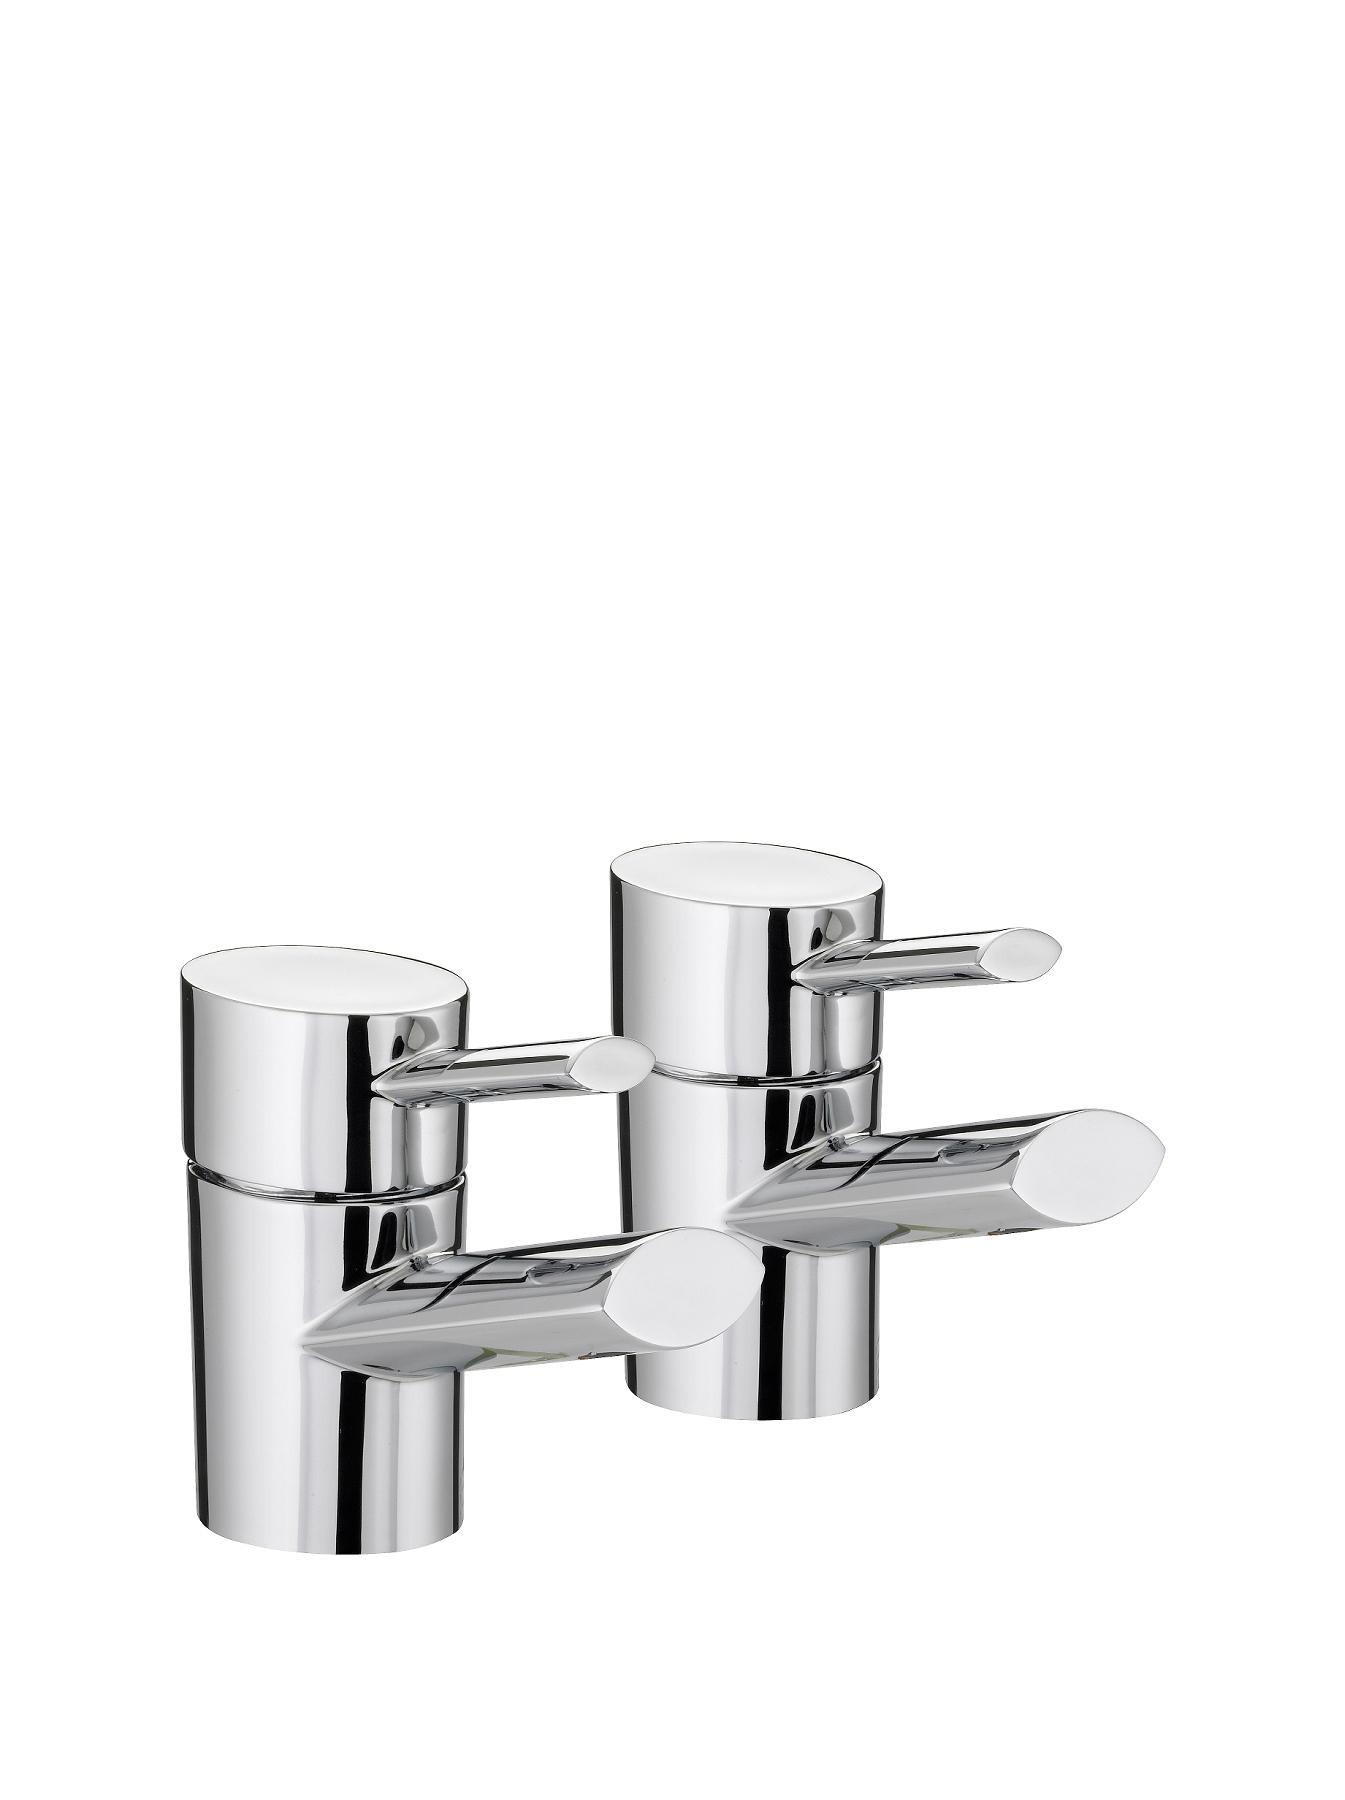 Bristan Oval Basin Taps - Chrome